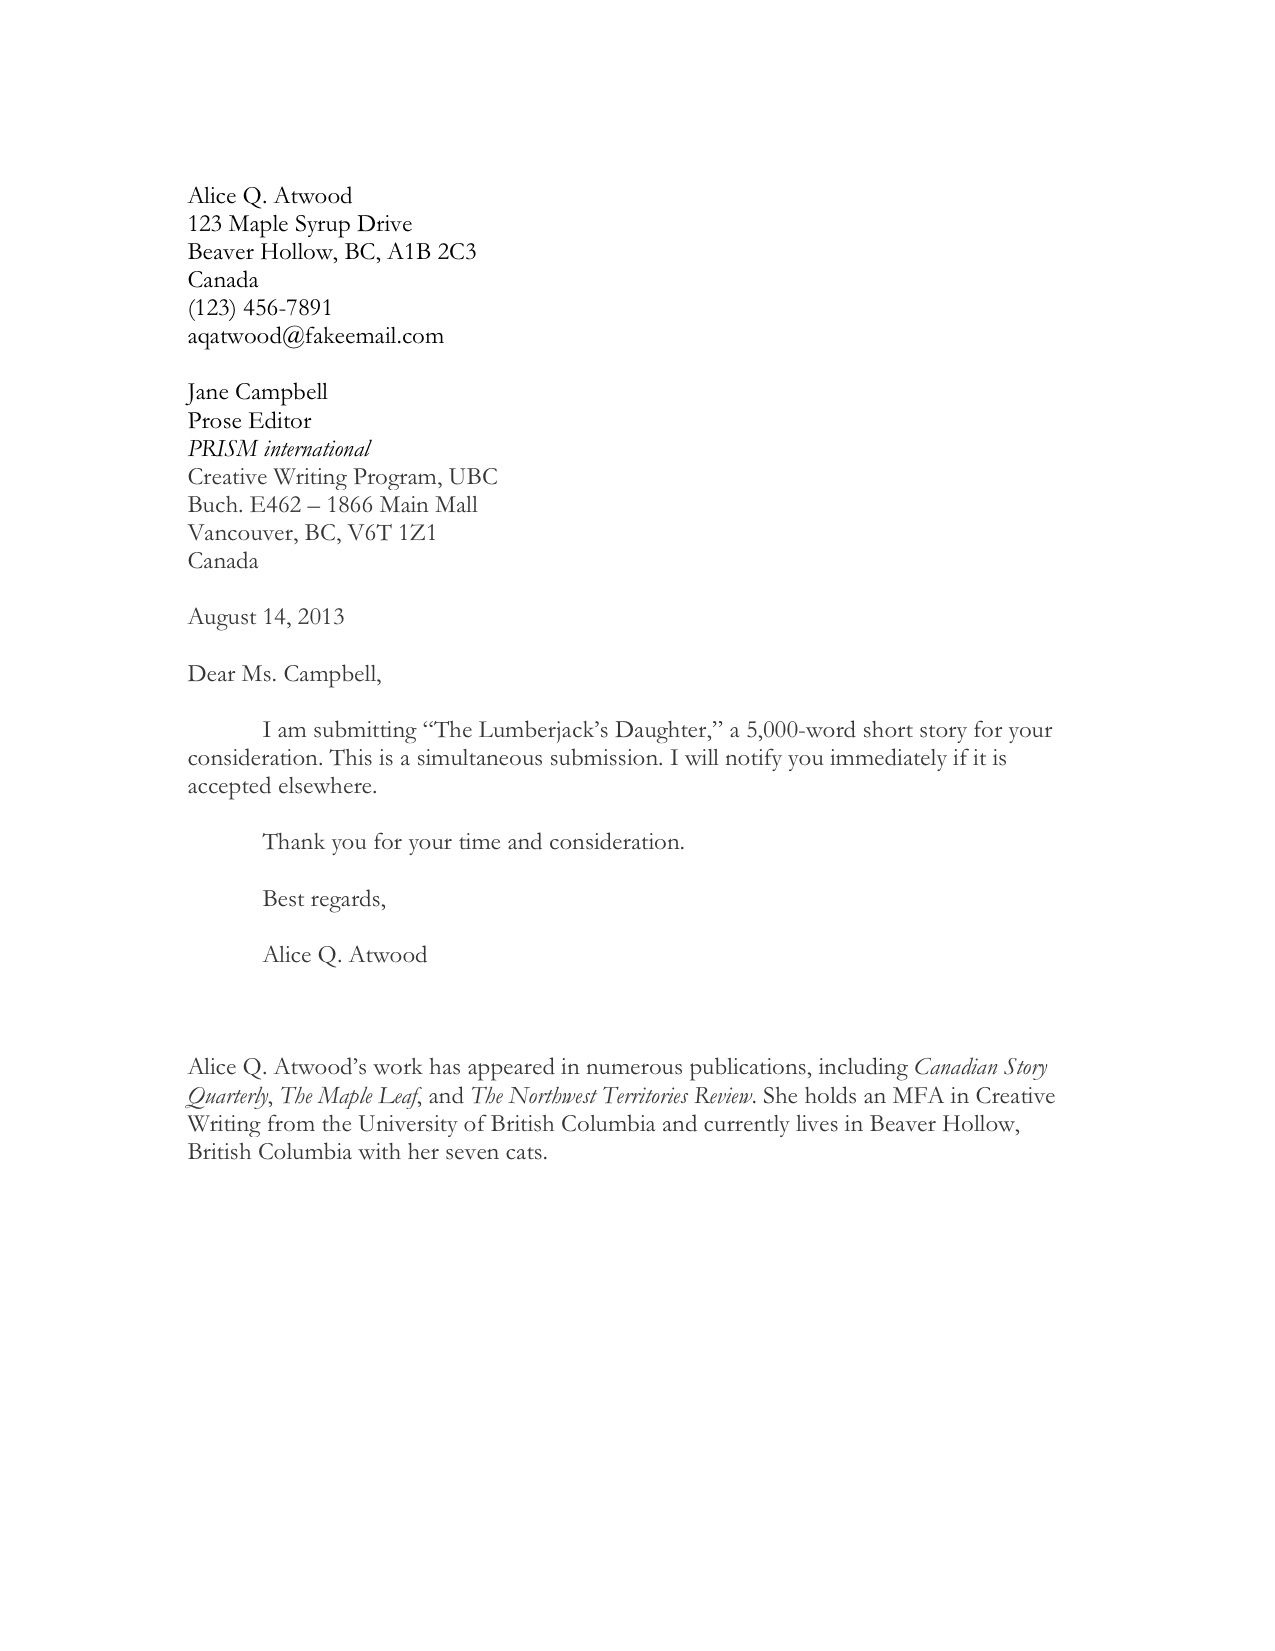 cover letter example prism international cover letter example